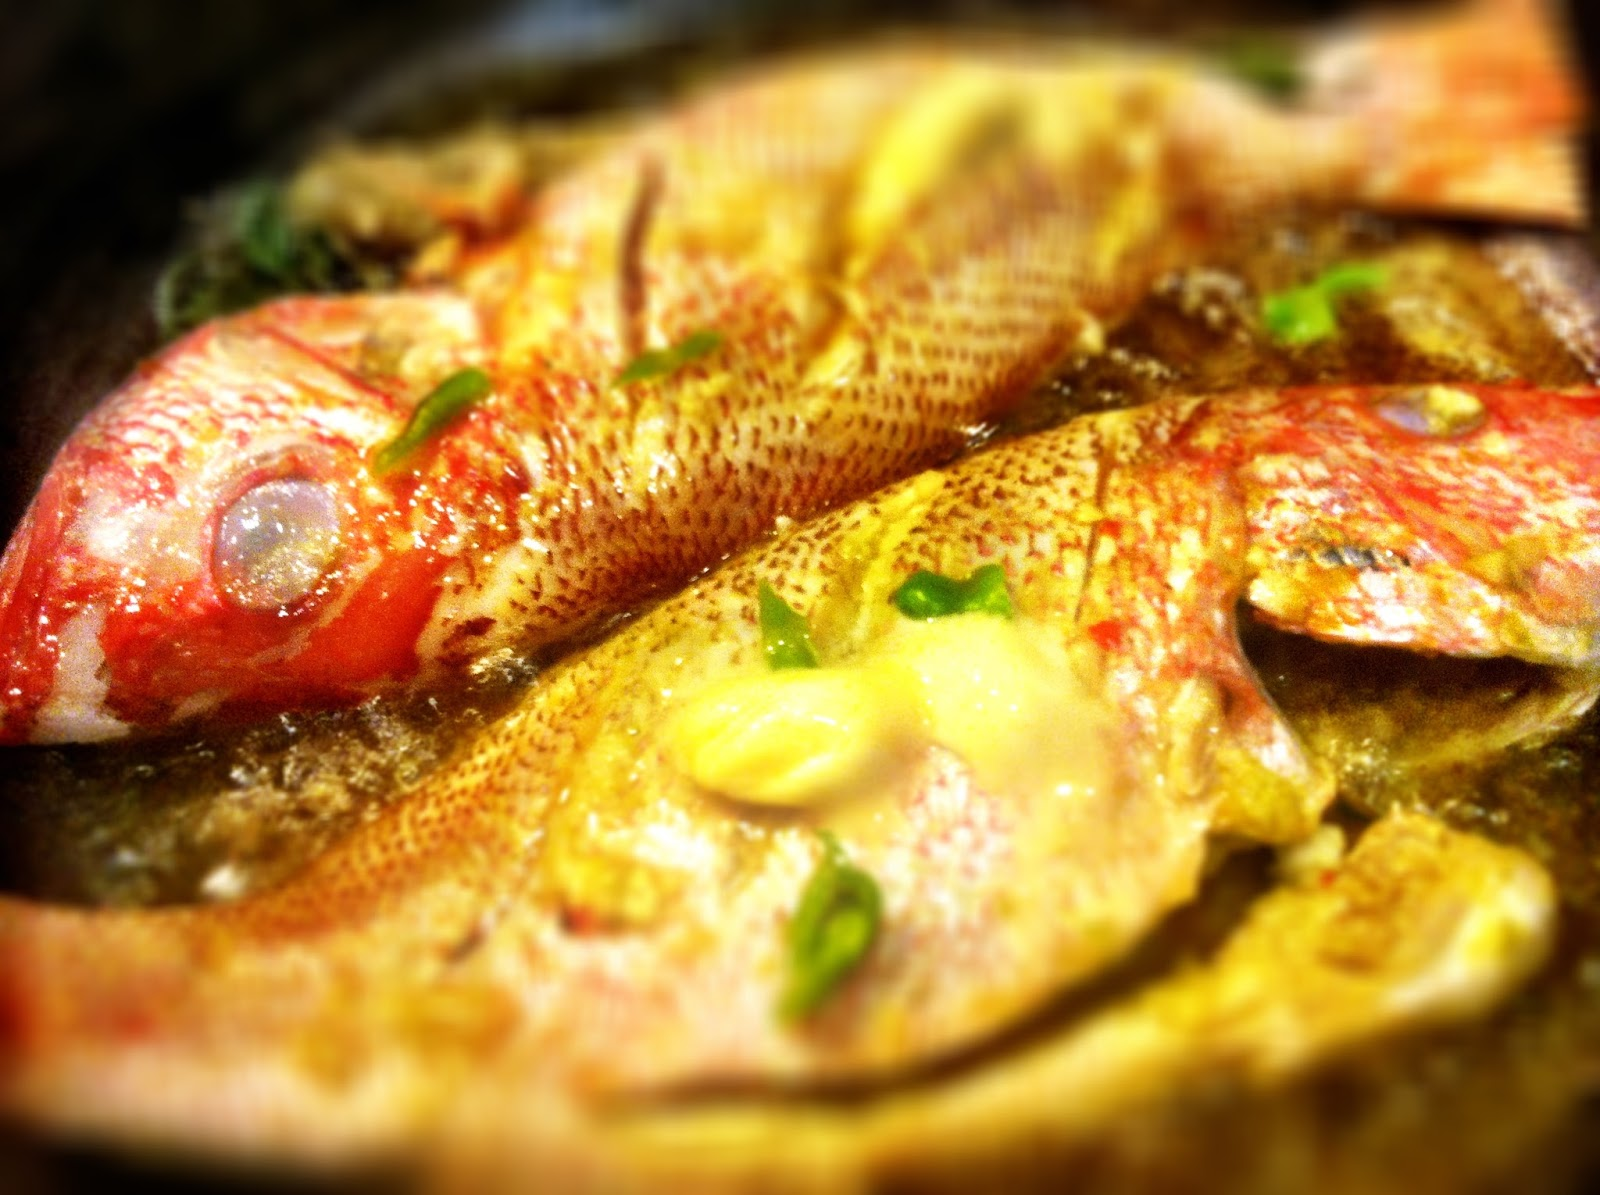 On good friday haitians eat fish l 39 union suite - Poisson image ...